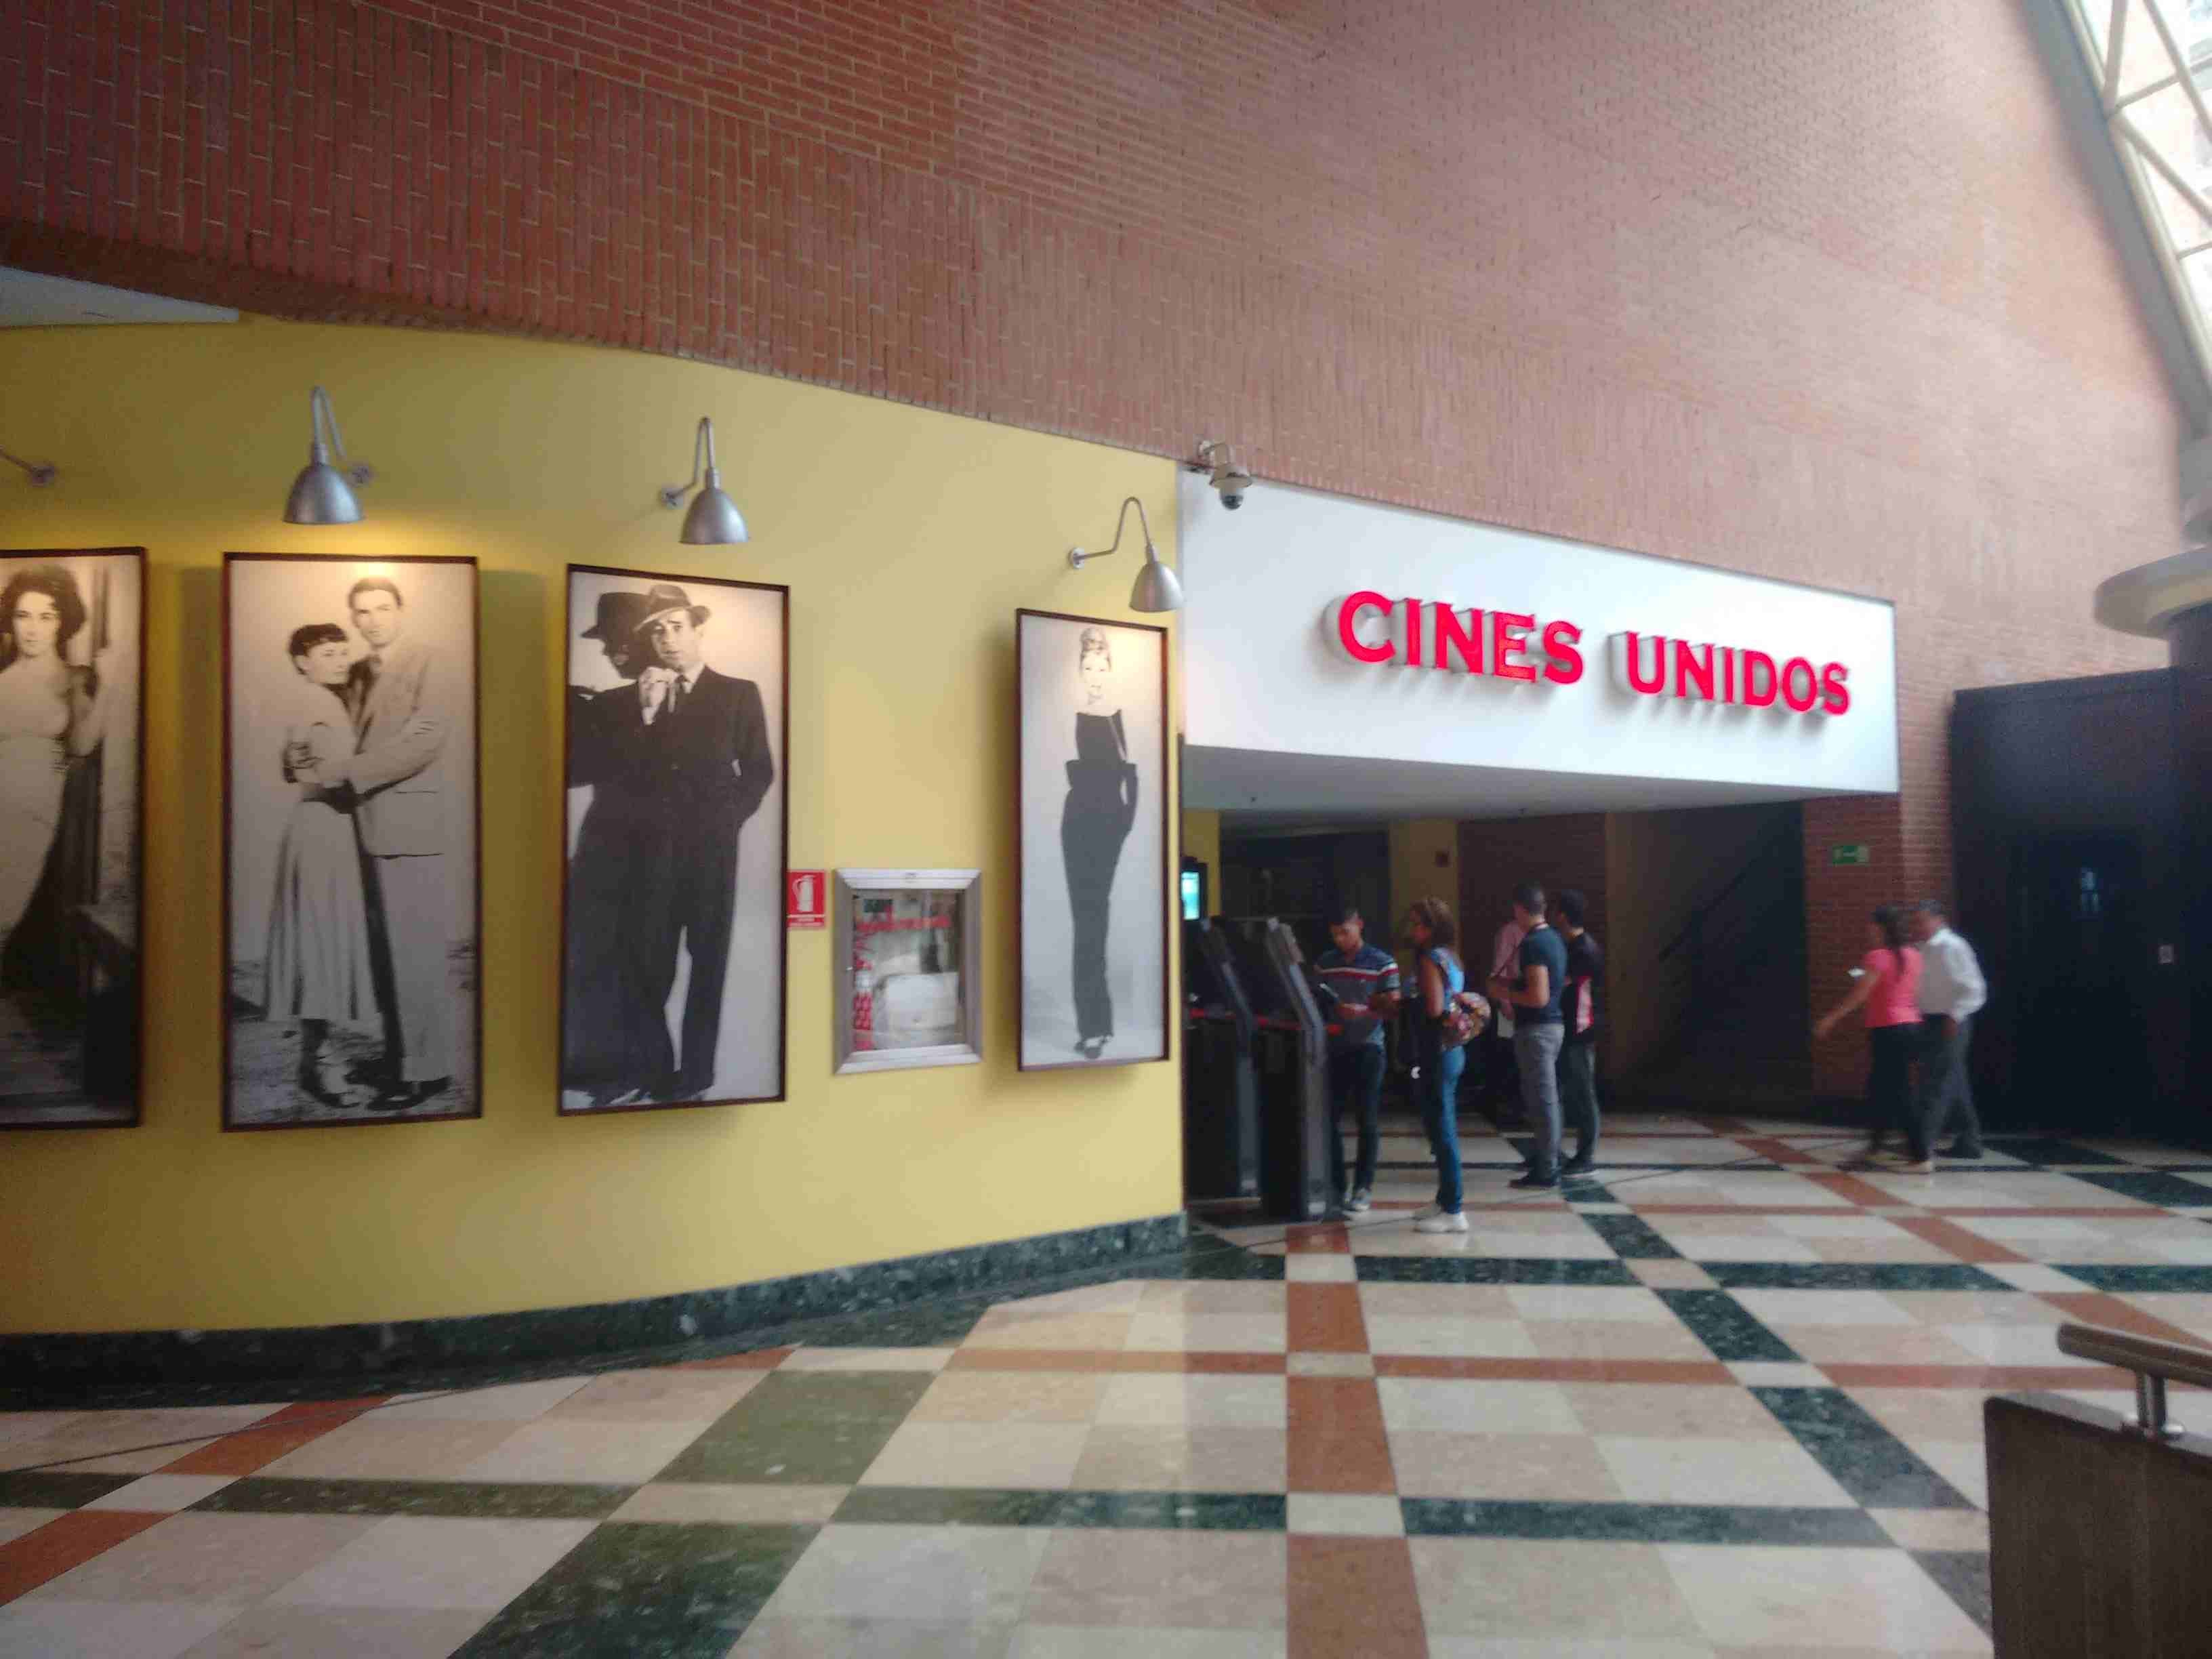 Tourism in Cines Unidos los Naranjos